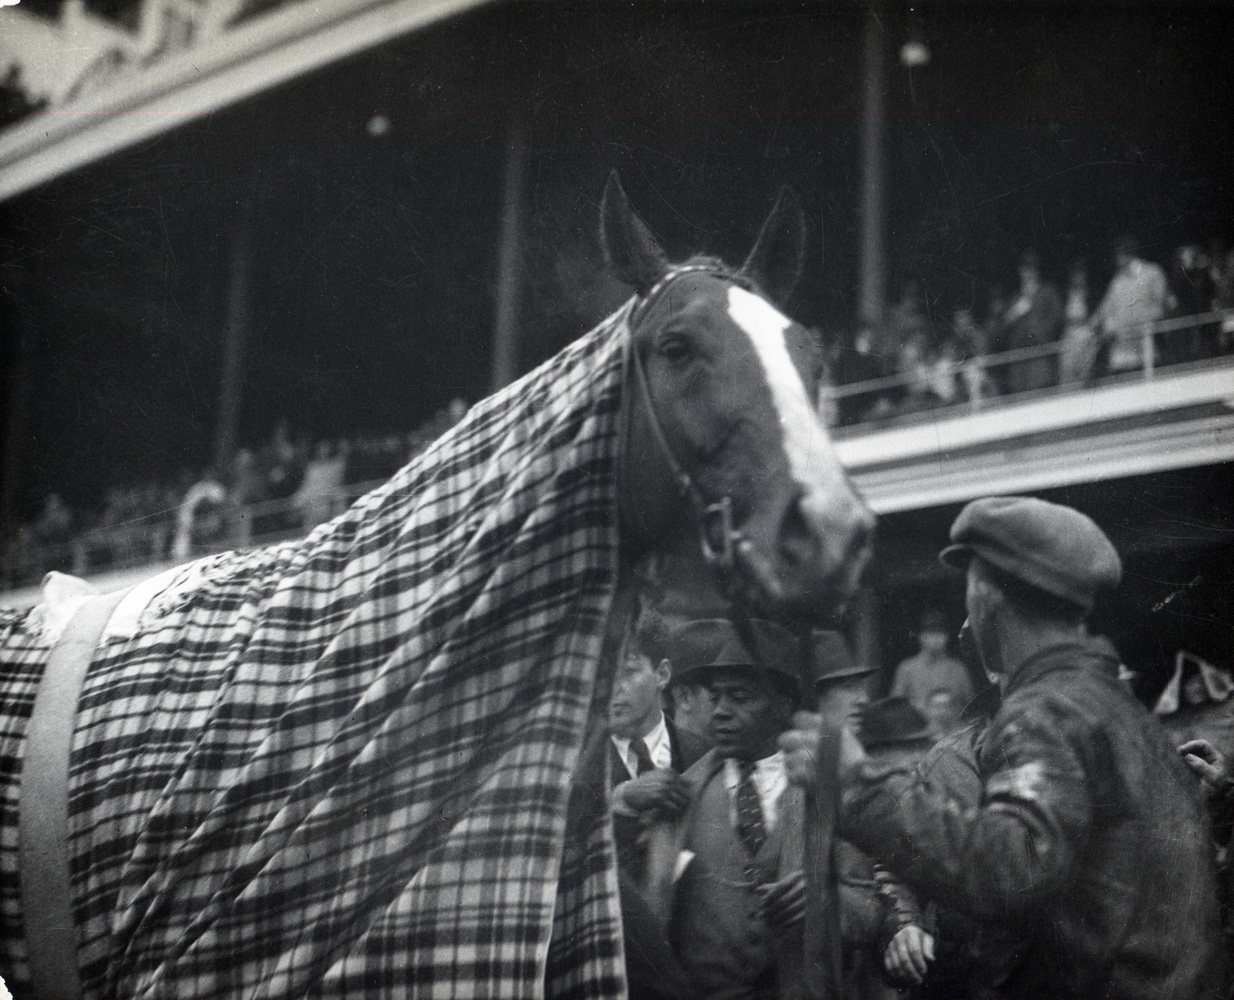 Omaha cooling down after a race in 1935 (Caulfield & Shook/Museum Collection)